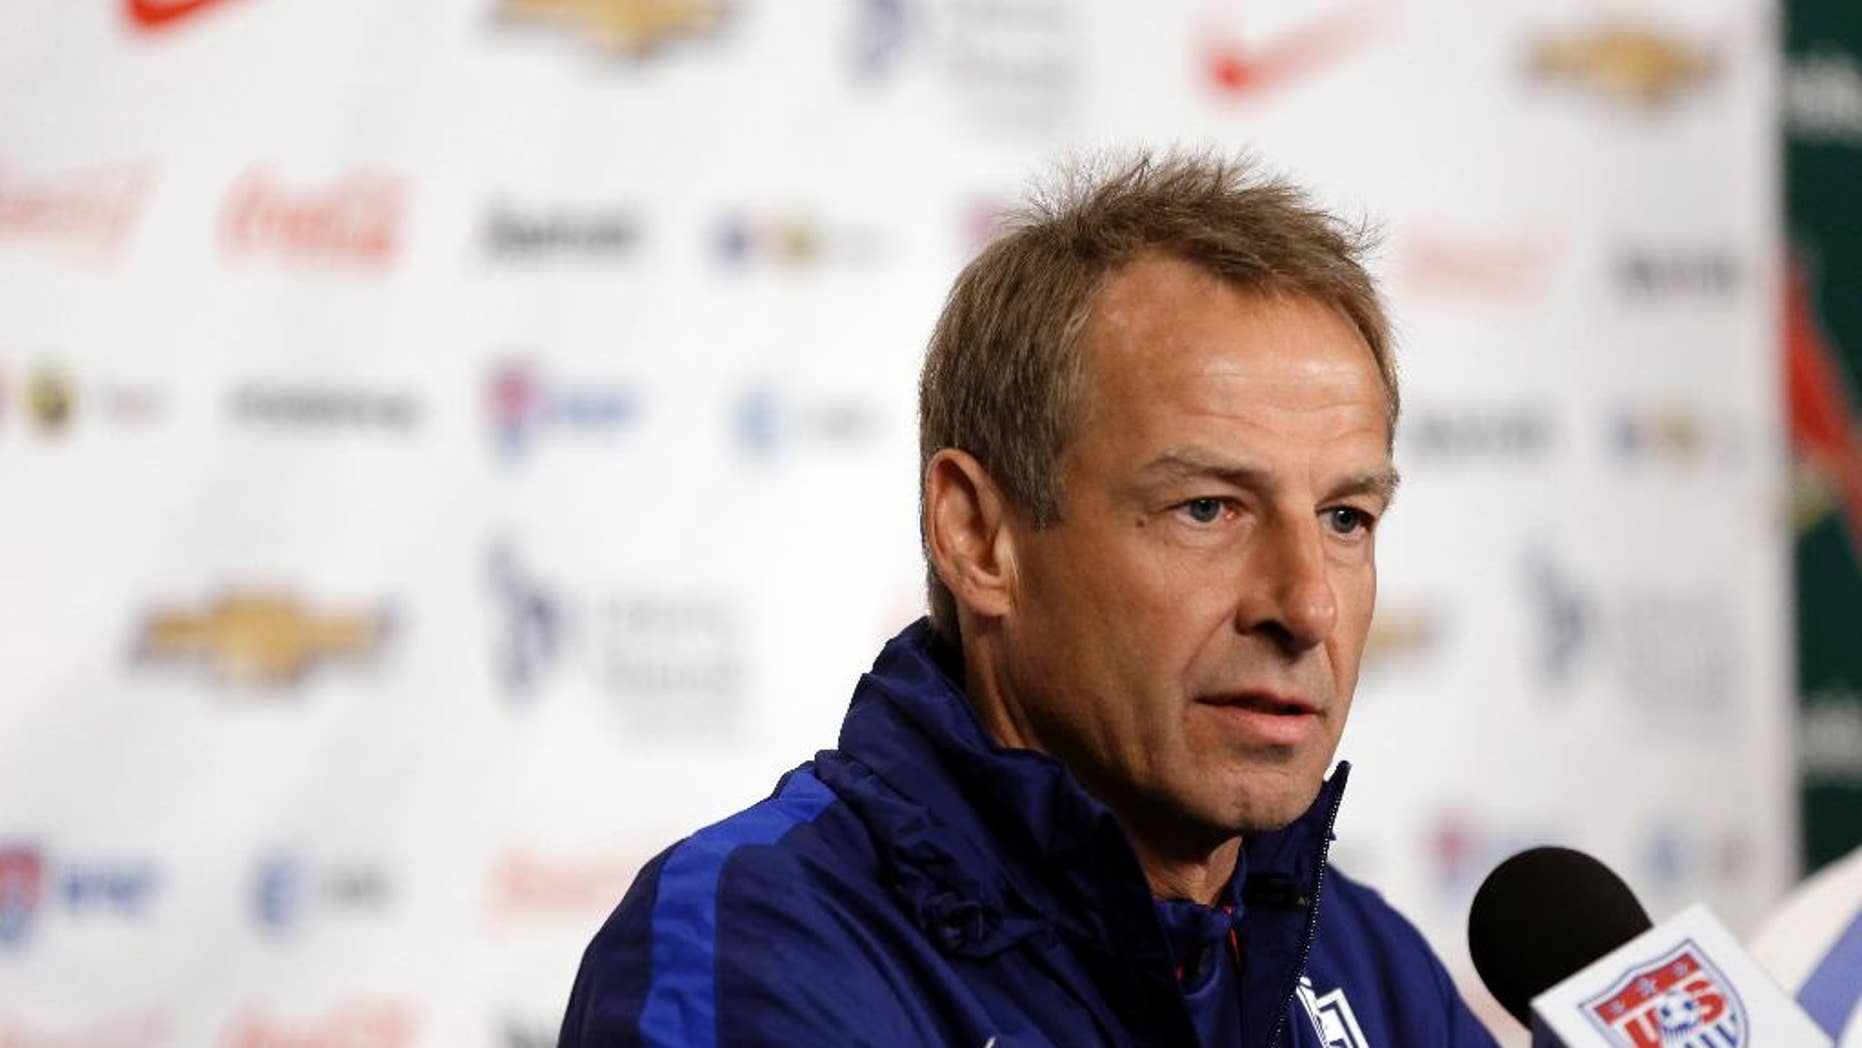 FILE - In this Nov. 12, 2015, file photo, U.S. men's soccer coach Jurgen Klinsmann takes part in a news conference in St. Louis. Klinsmann is proud of his half-decade in charge of the U.S. national team, and he believes he left successor Bruce Arena in a position to make the Americans even better. Klinsmann made his first public remarks since his firing when he spoke Friday at a convention of the National Soccer Coaches Association of America in Los Angeles. (AP Photo/Jeff Roberson, file)